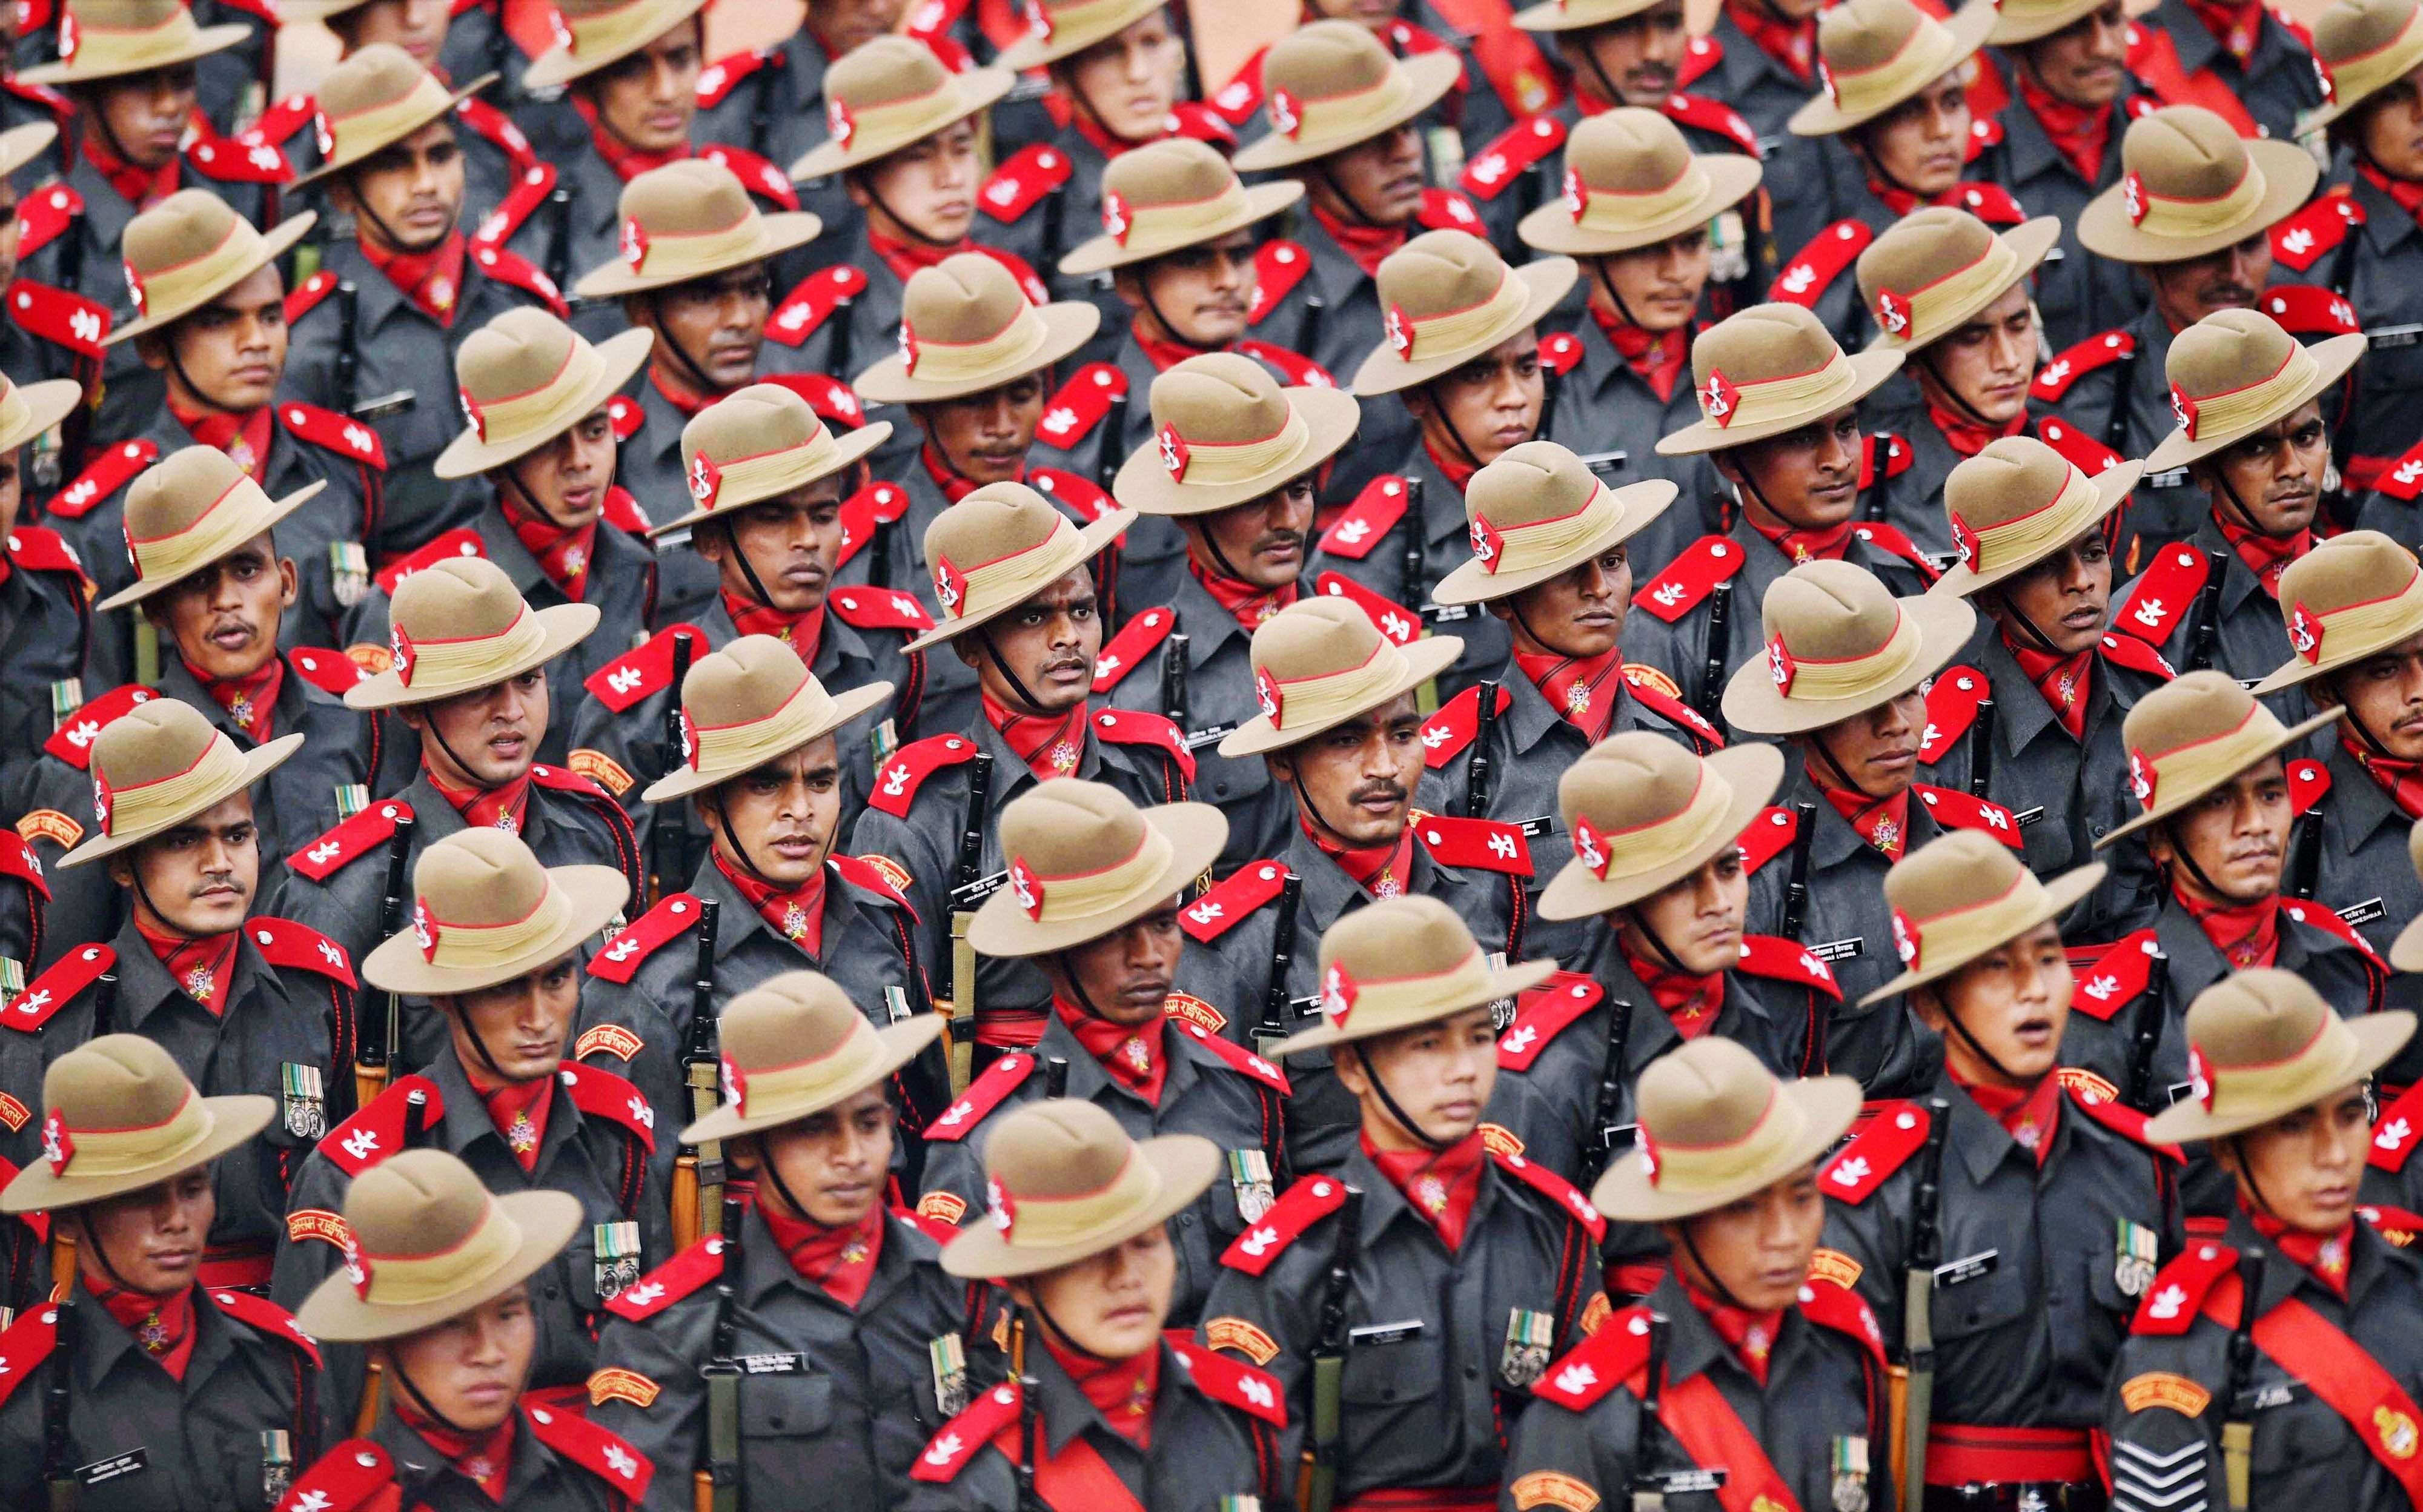 Paramilitary soldiers march during the full dress rehearsal for the Republic Day parade at Rajpath in New Delhi. (PTI photo by Atul Yadav)